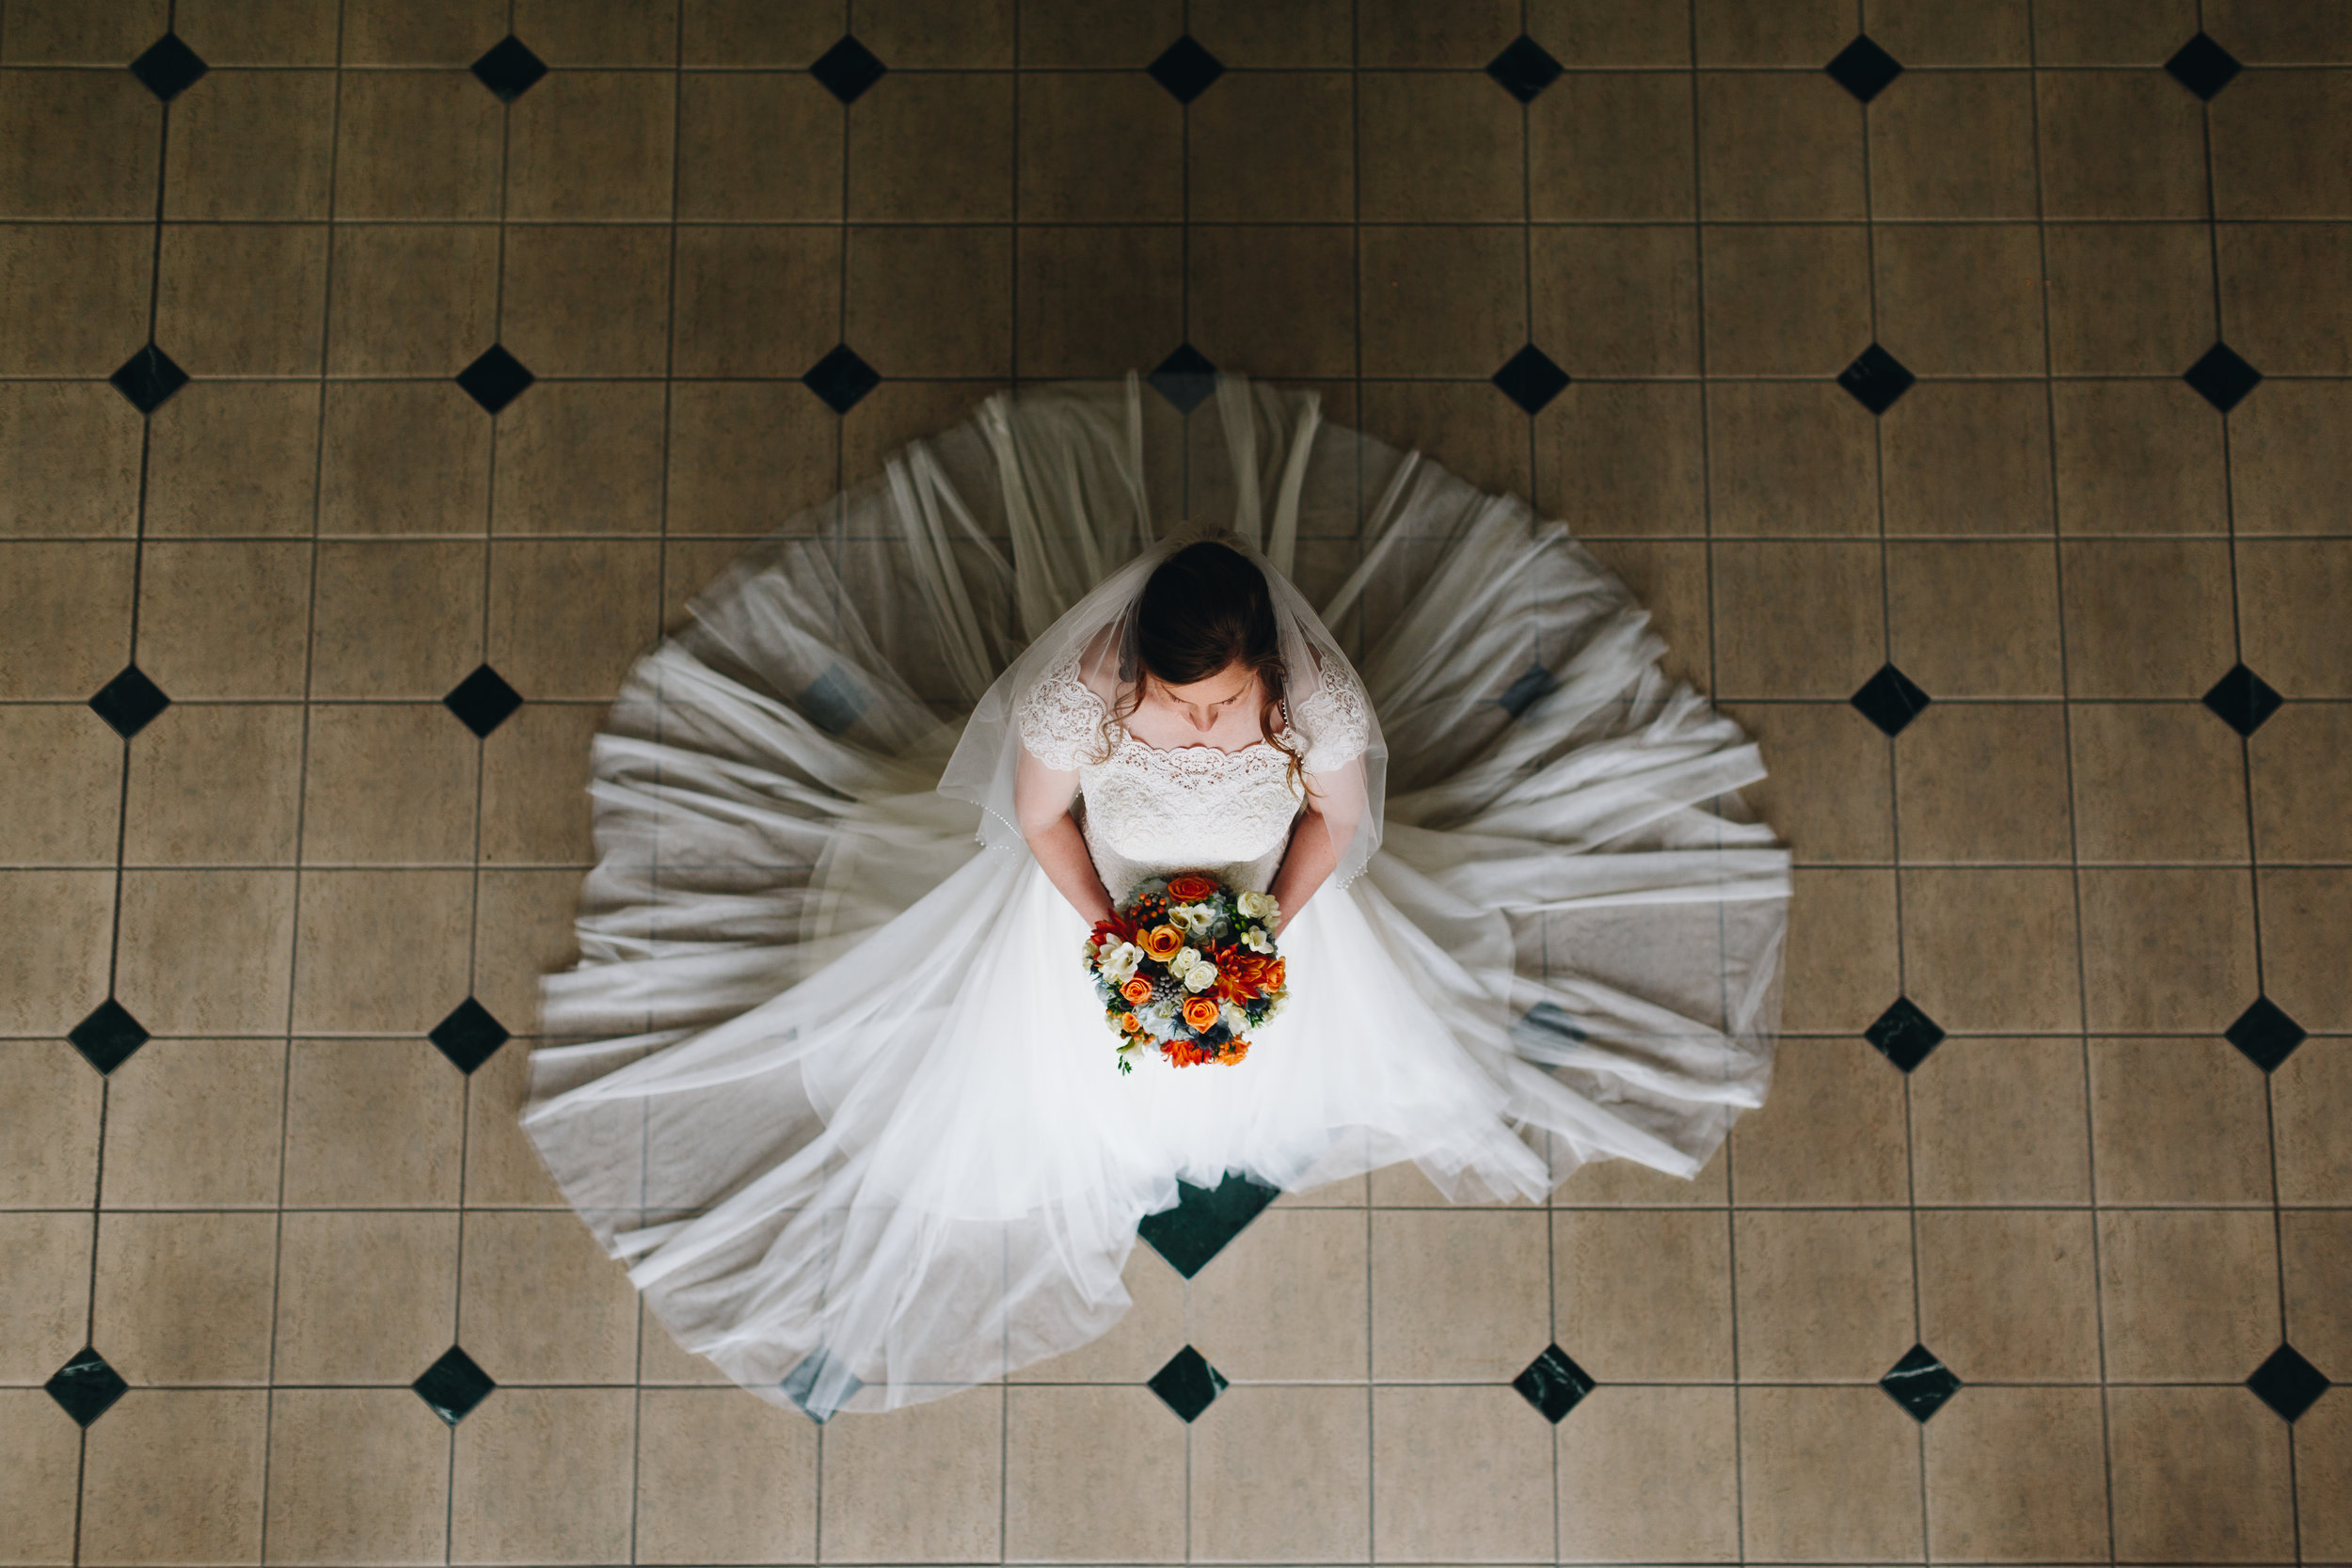 Moody Bridal Portrait with black and white tile